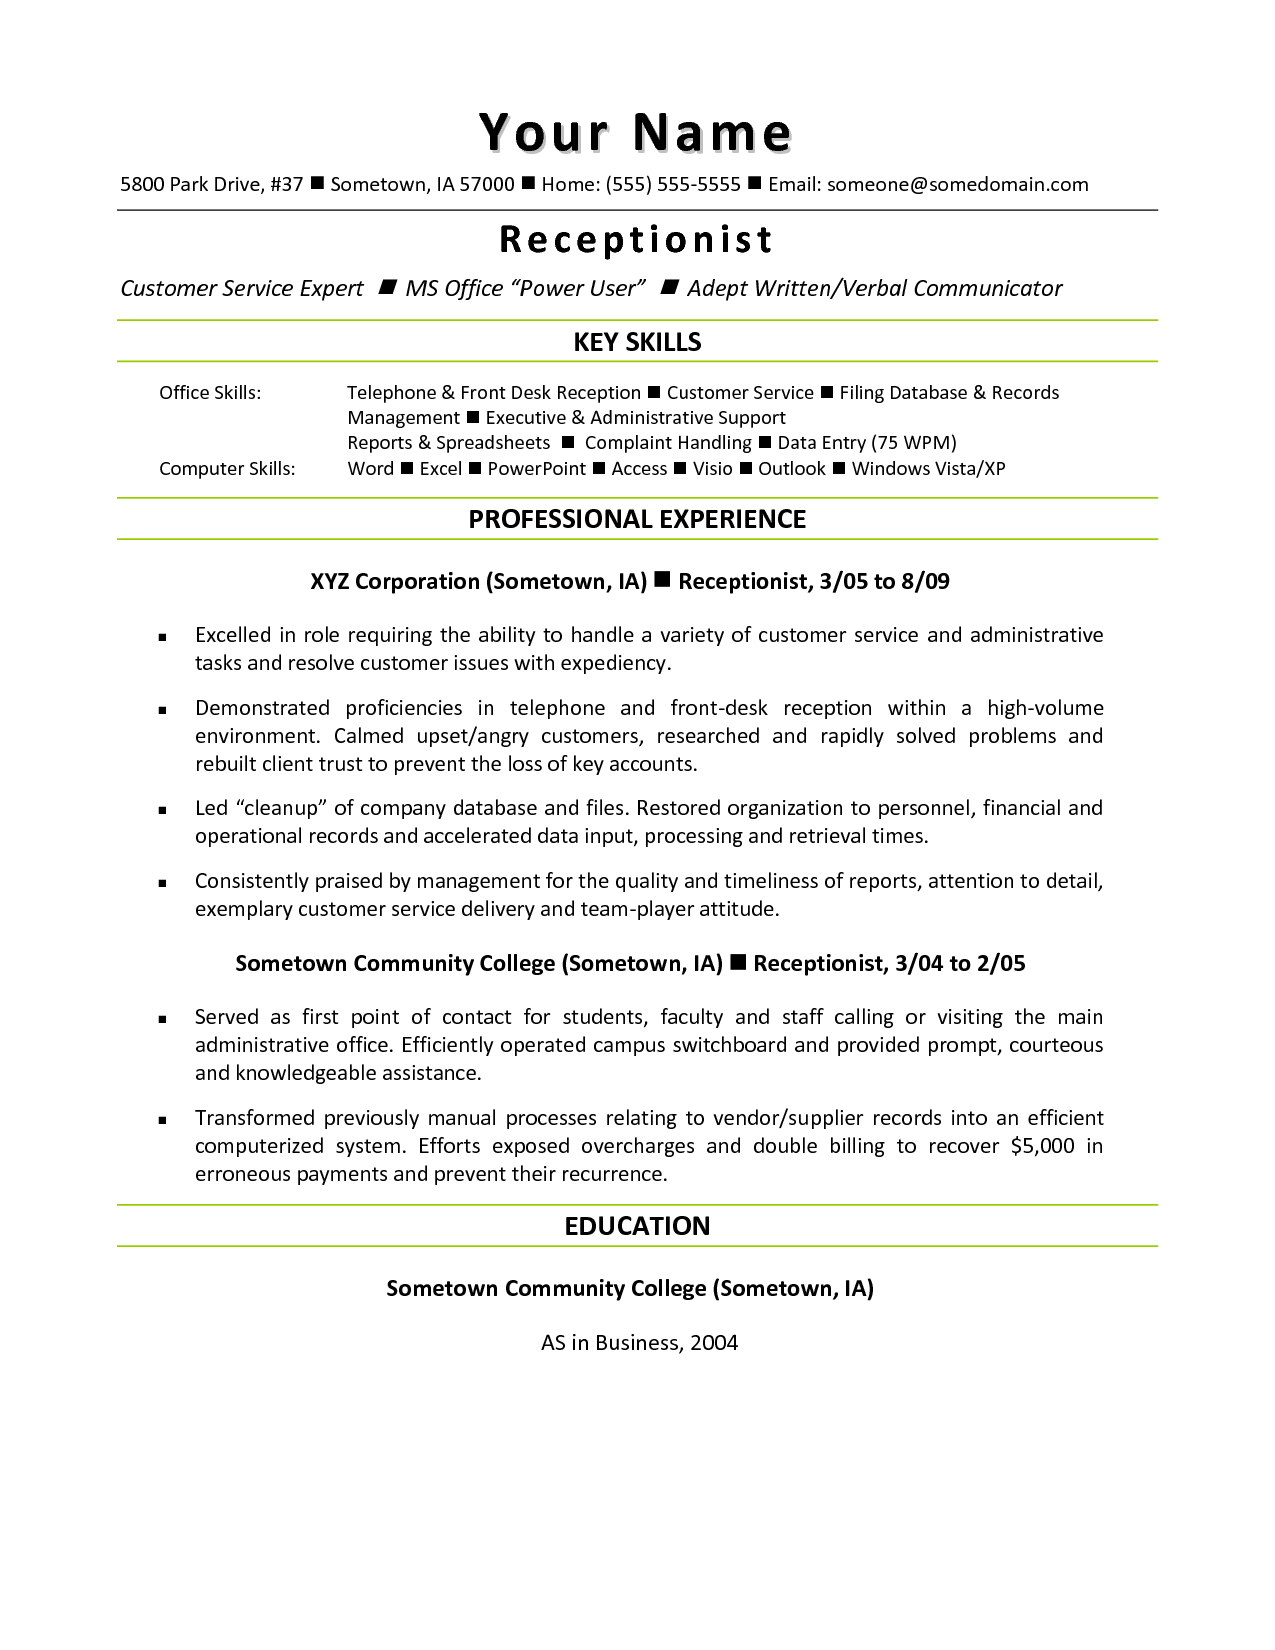 Law Front Office Receptionist Resume Key skills and professional – Receptionist Resume Templates